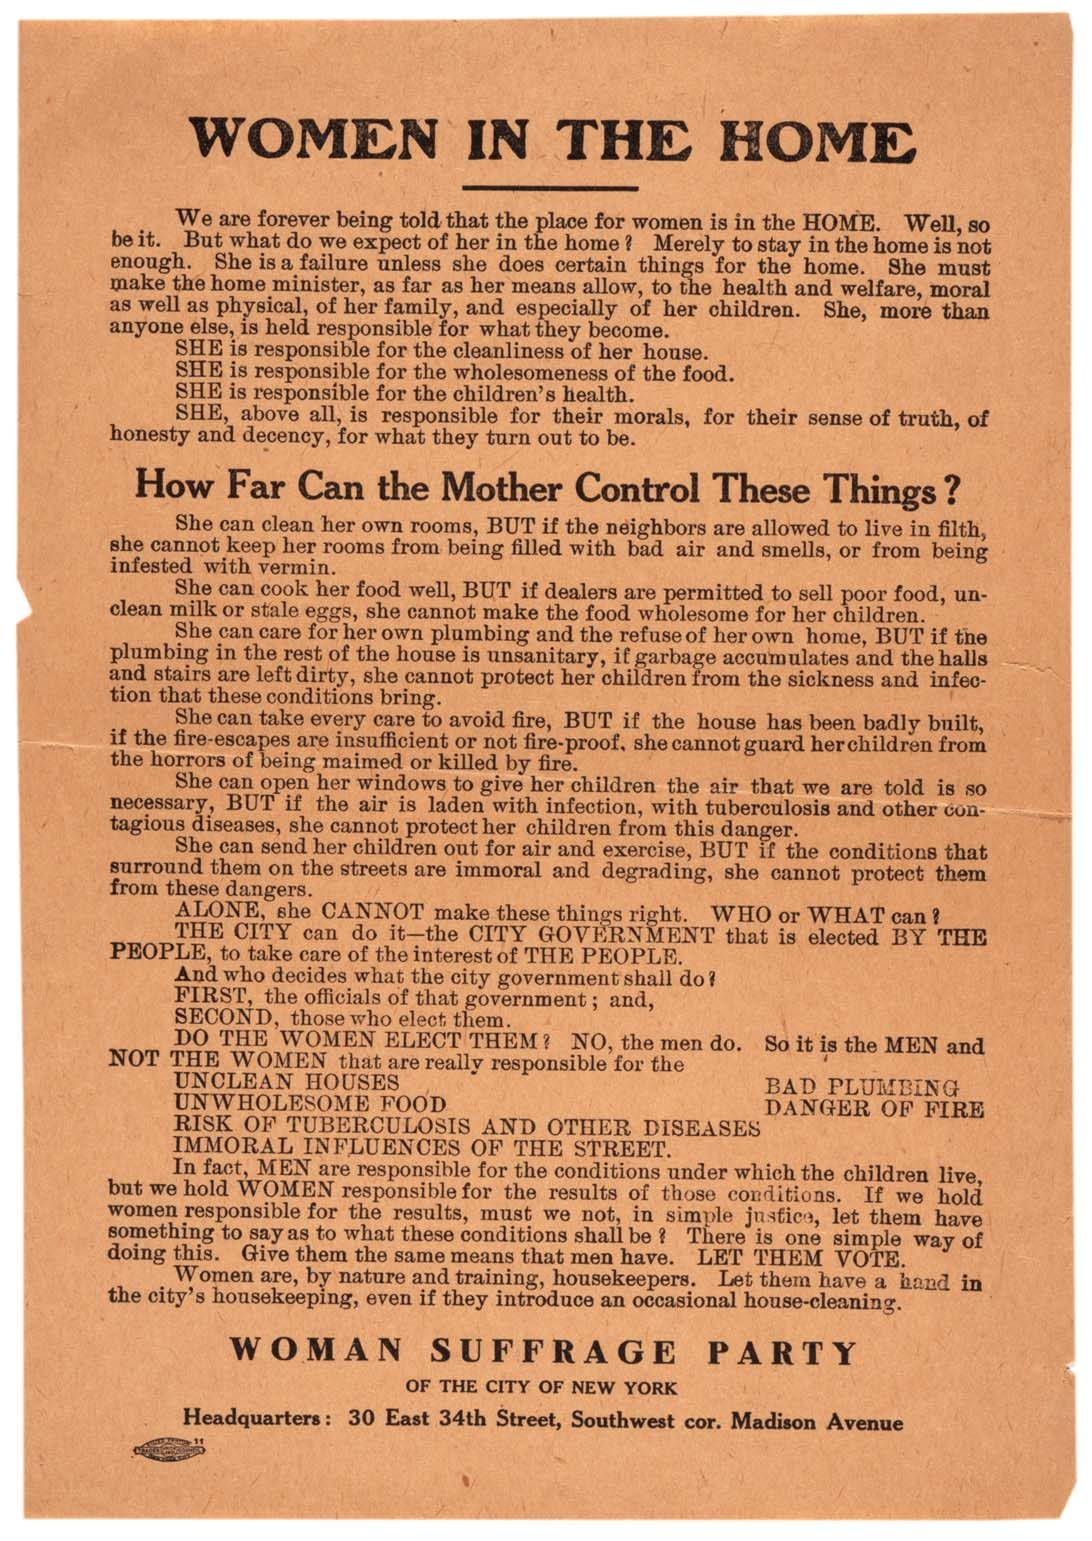 Woman Suffrage Party Of The City Of New York Women In The